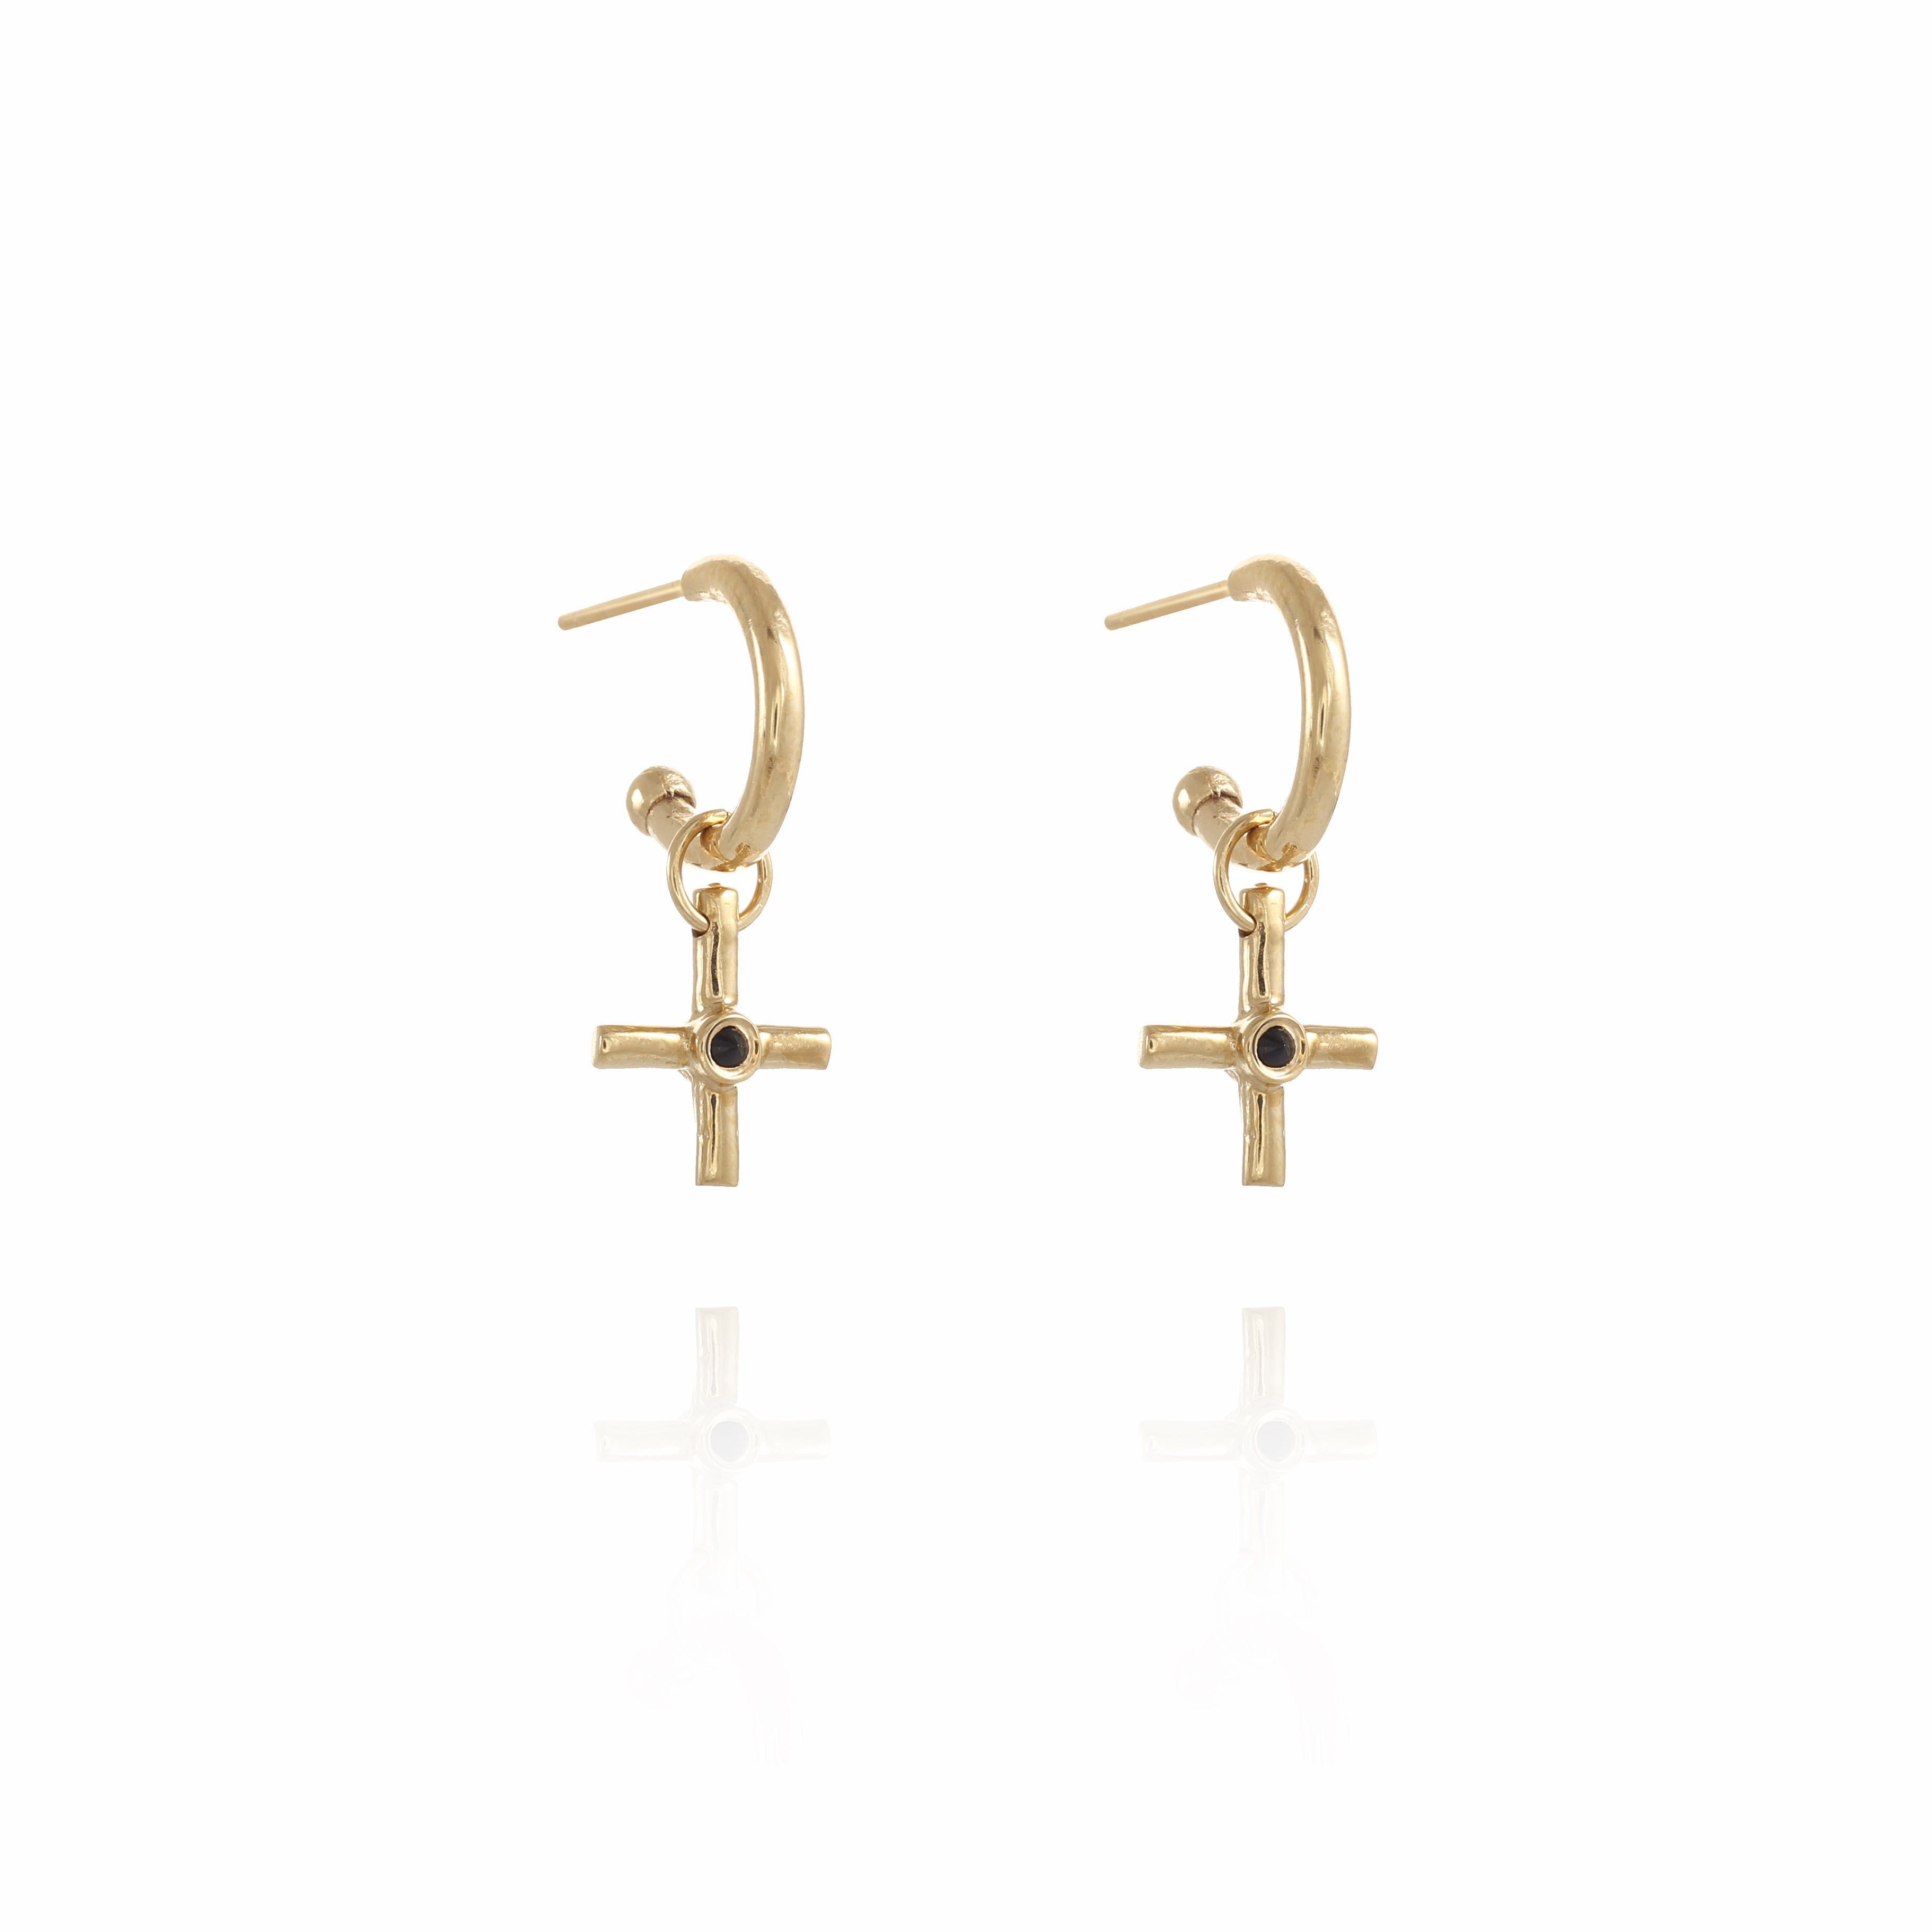 S Gipsy Plus gold plated Earring